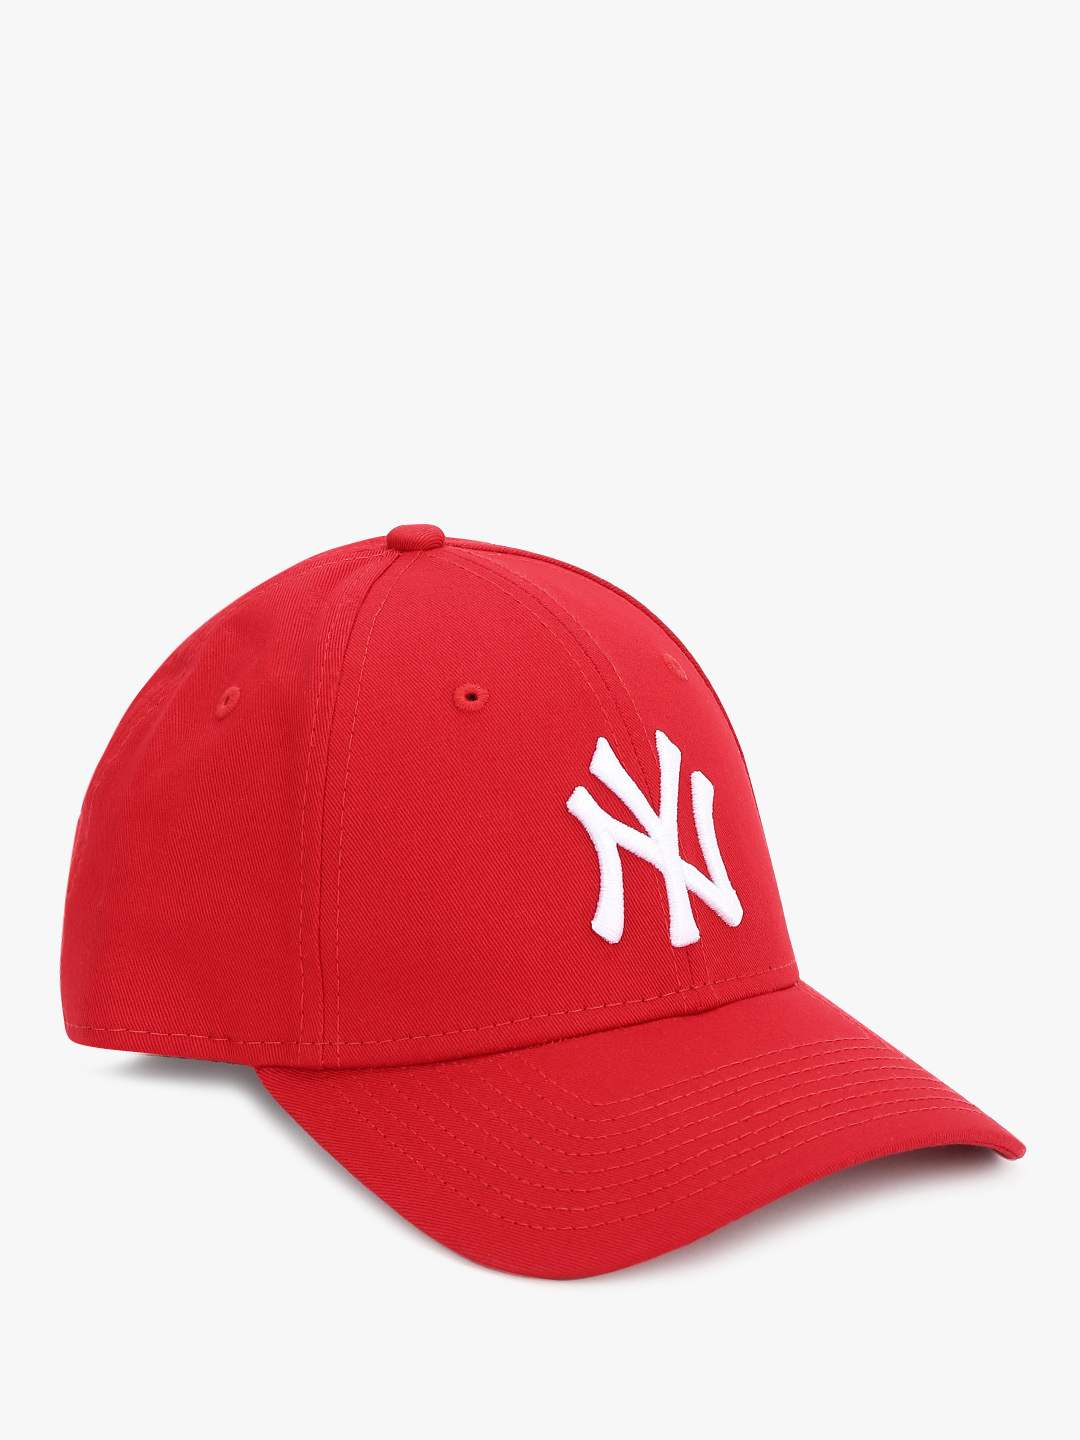 New Era Red 9FORTY Adjustable Cap 1